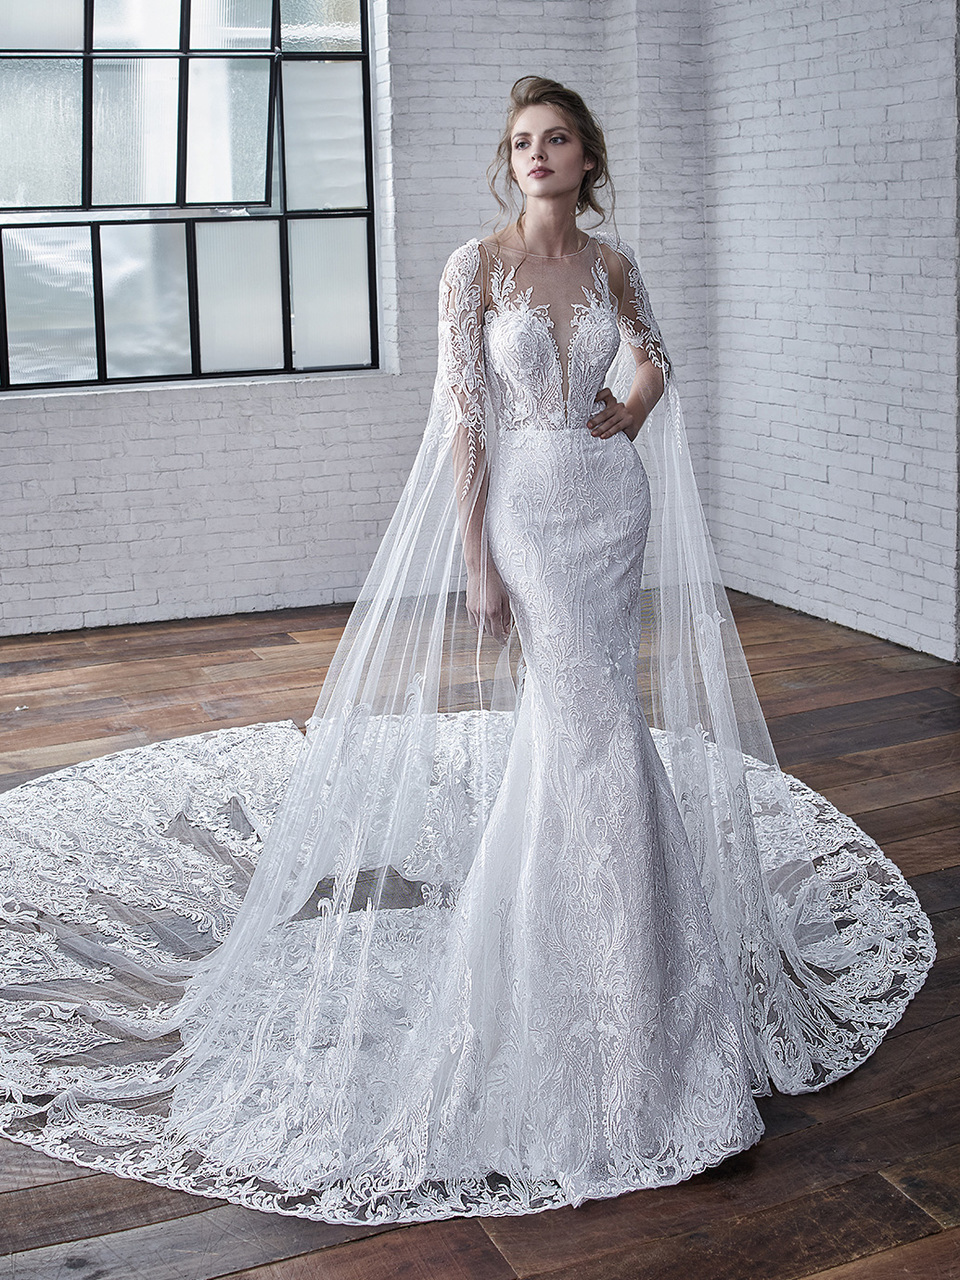 Cayenne:  There's more to this stunner than meets the eye. This is a fit and flare gown with floral embroidered lace and glitter tulle. The lace sleeves are detachable, giving brides a two-for-one look with a very unique twist.